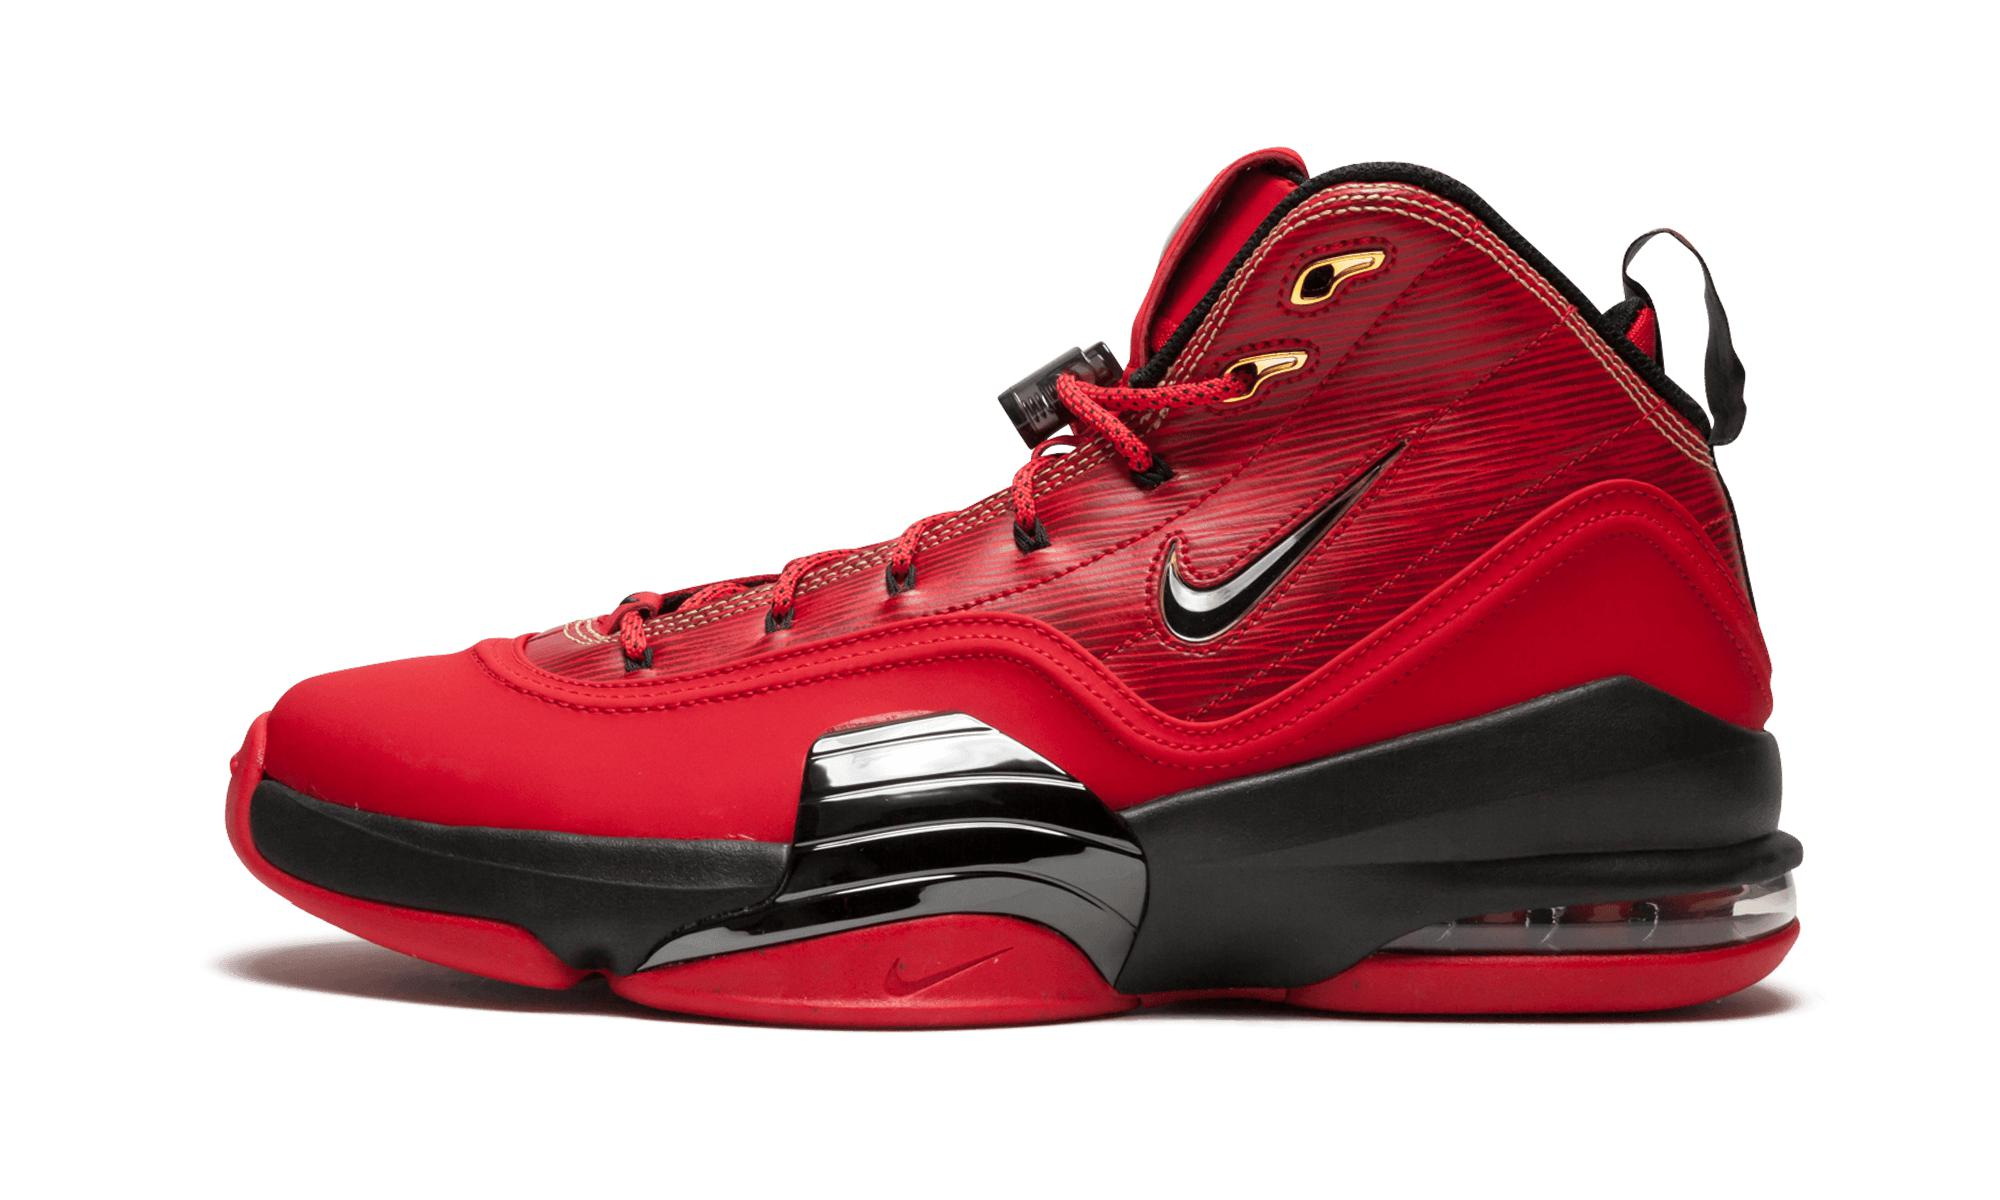 c931988463ae Lyst - Nike Pippen 6 Sneakers in Red for Men